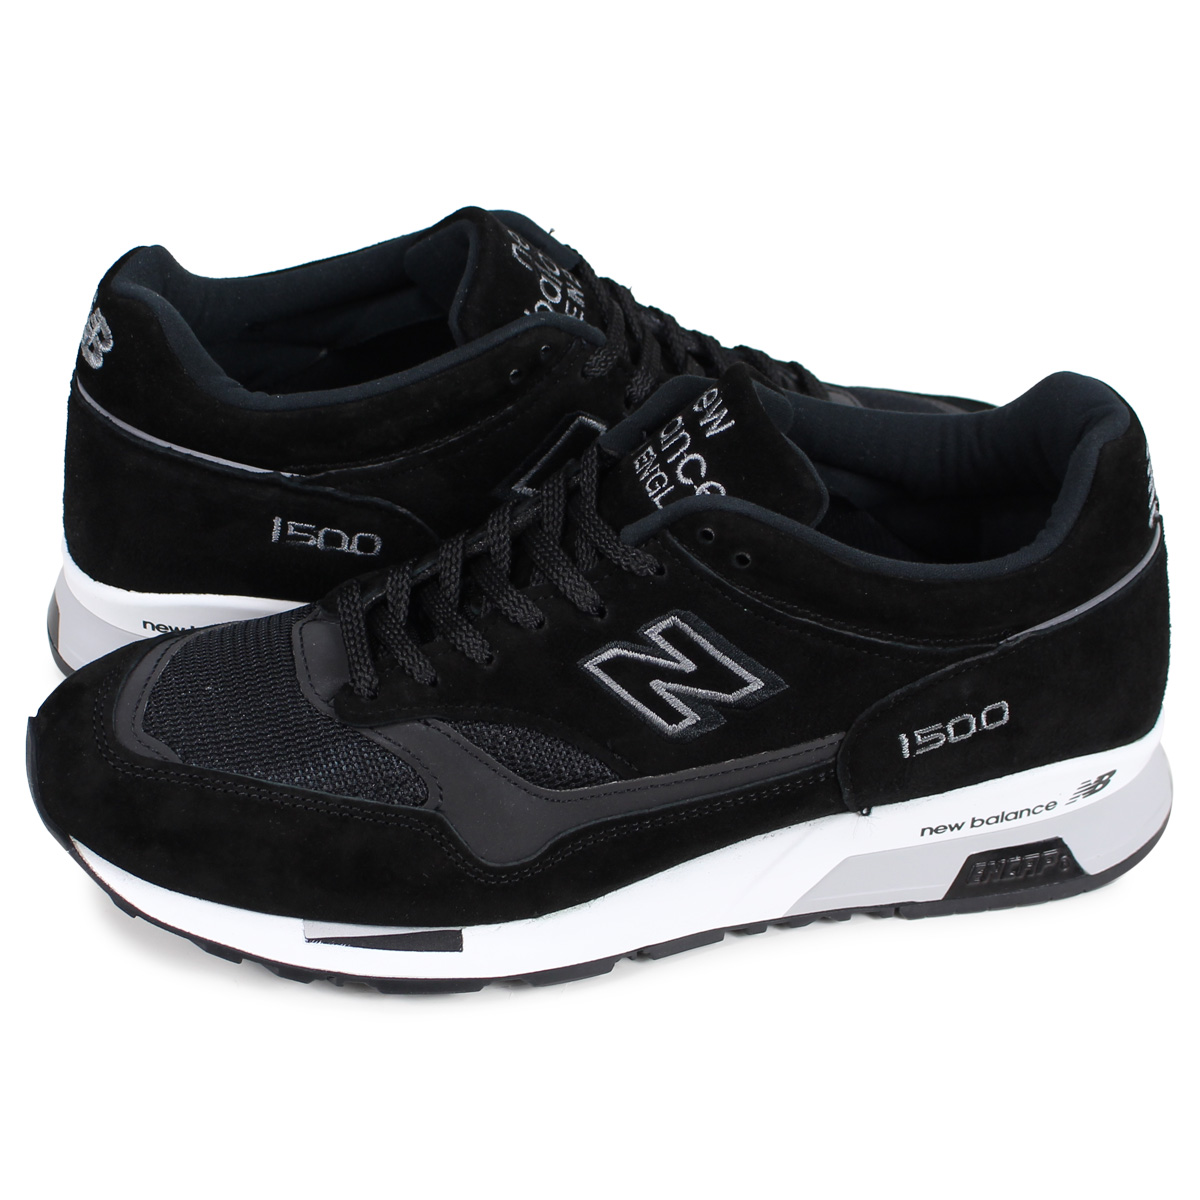 sports shoes 3be8b e4966 new balance M1500JKK New Balance 1500 sneakers men D Wise MADE IN UK black  black